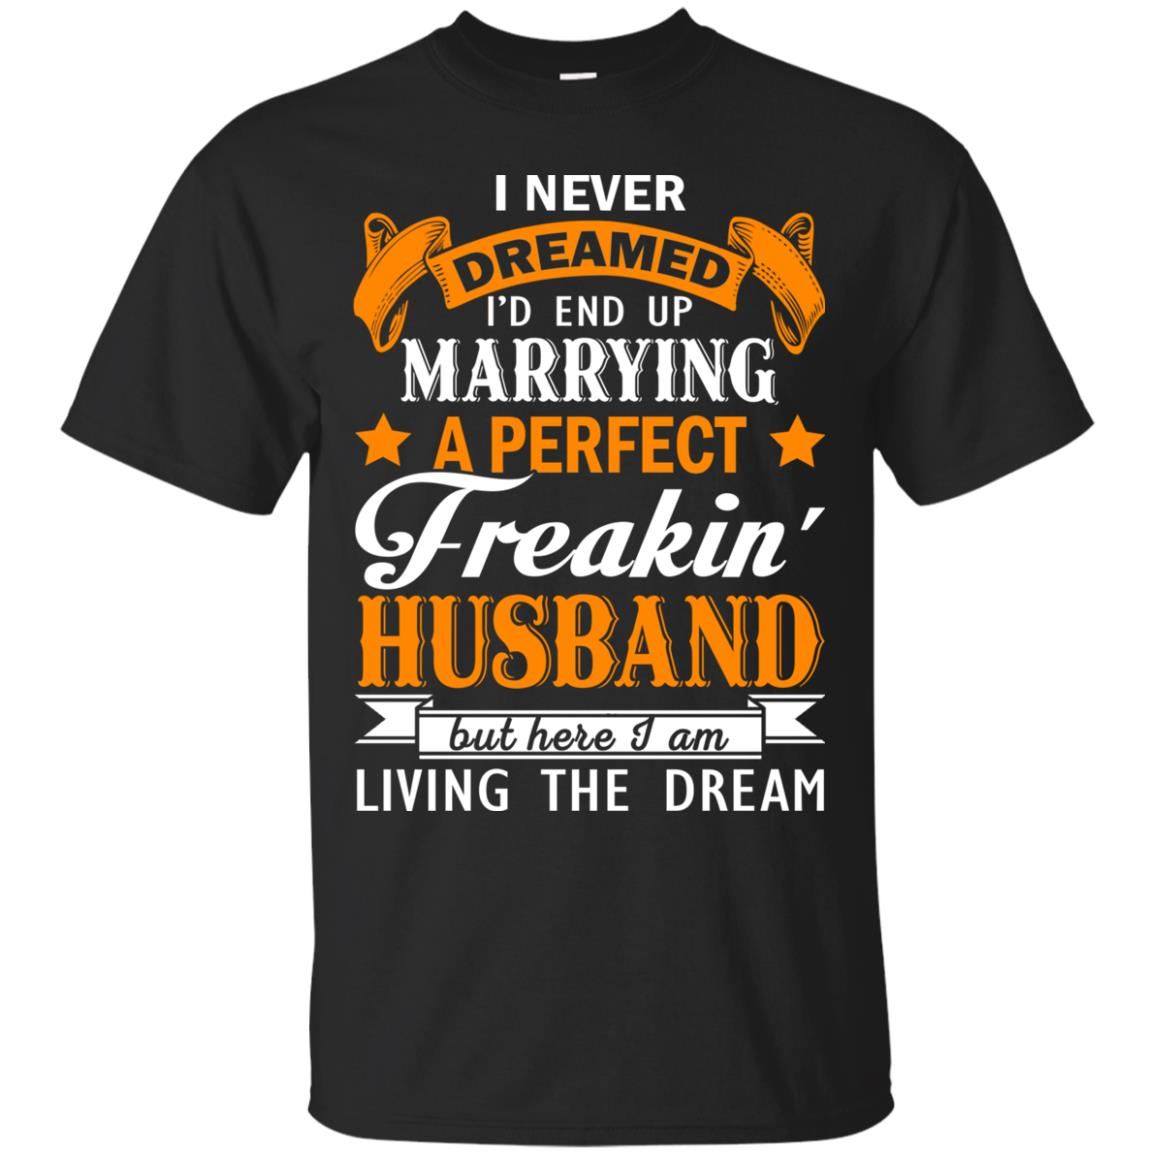 image 1838px I never dreamed I'd end up marrying a perfect freaking husband t shirts, hoodies, tank